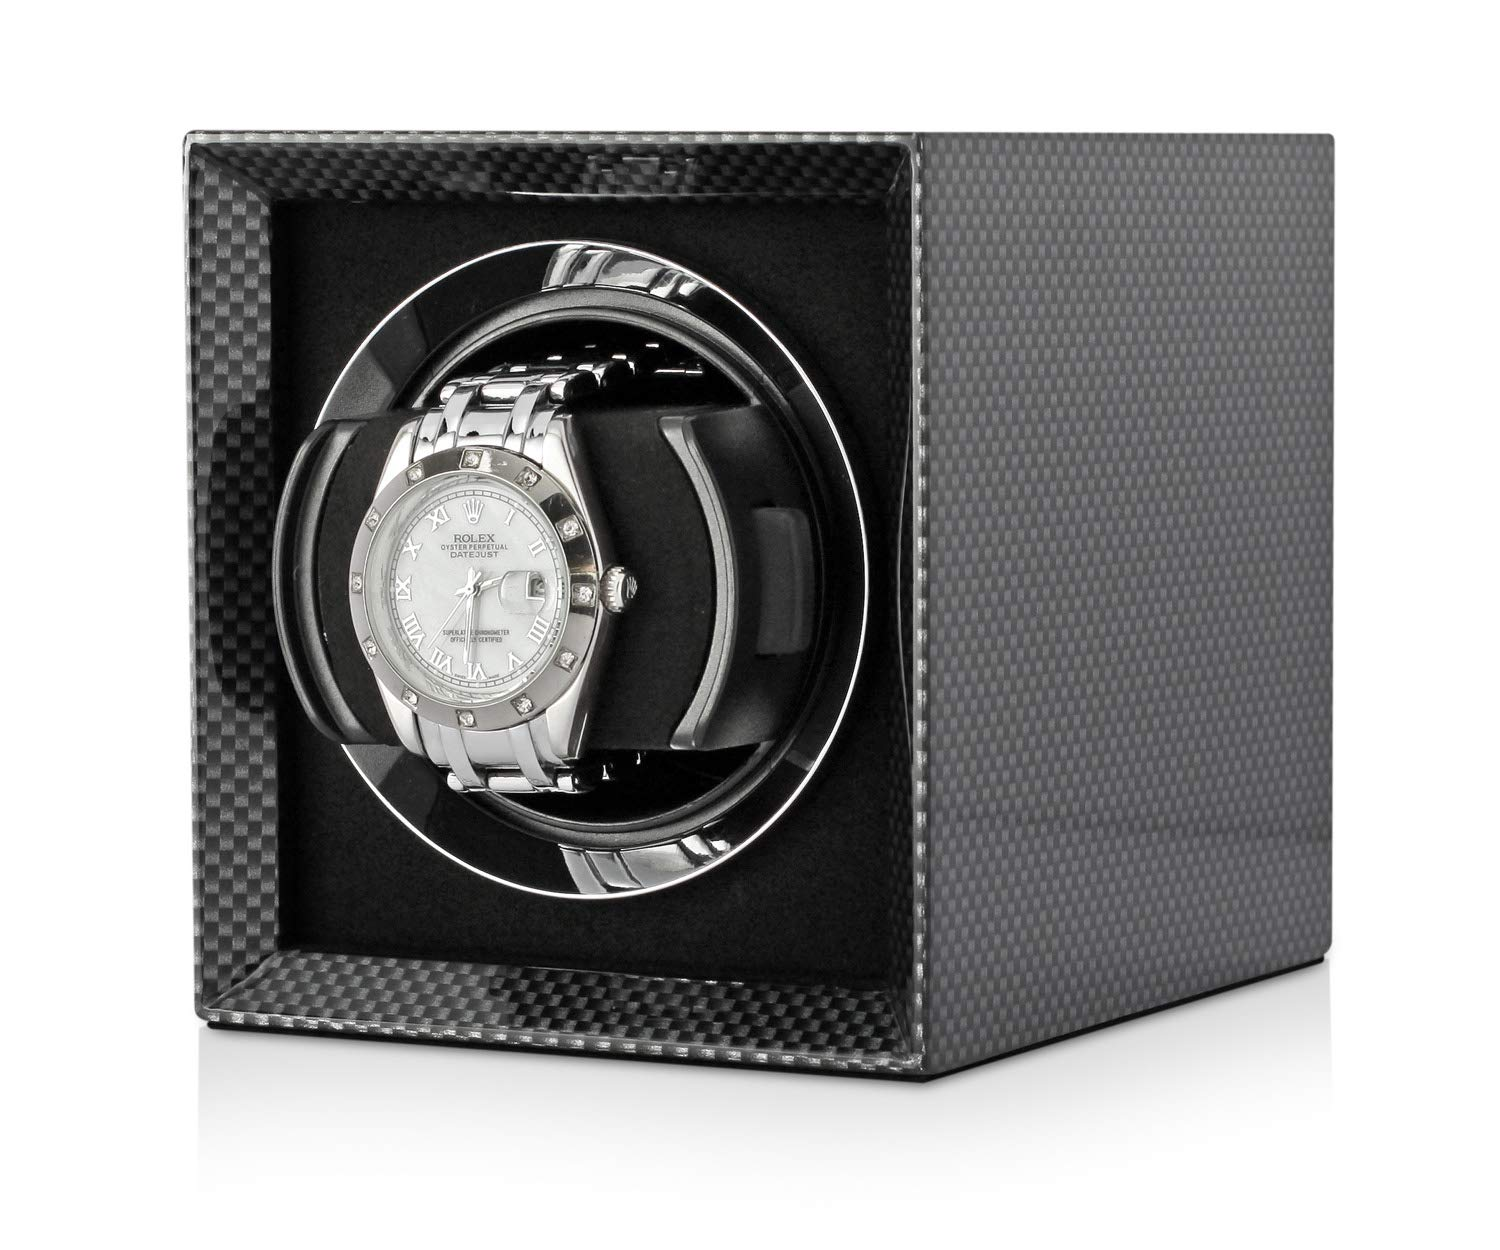 Compact Single Watch Winder Box for Winding 1 Automatic Watch with LCD Touchscreen Display and Rechargeable Battery for All Watch Brands and All Watch Sizes (Carbon)